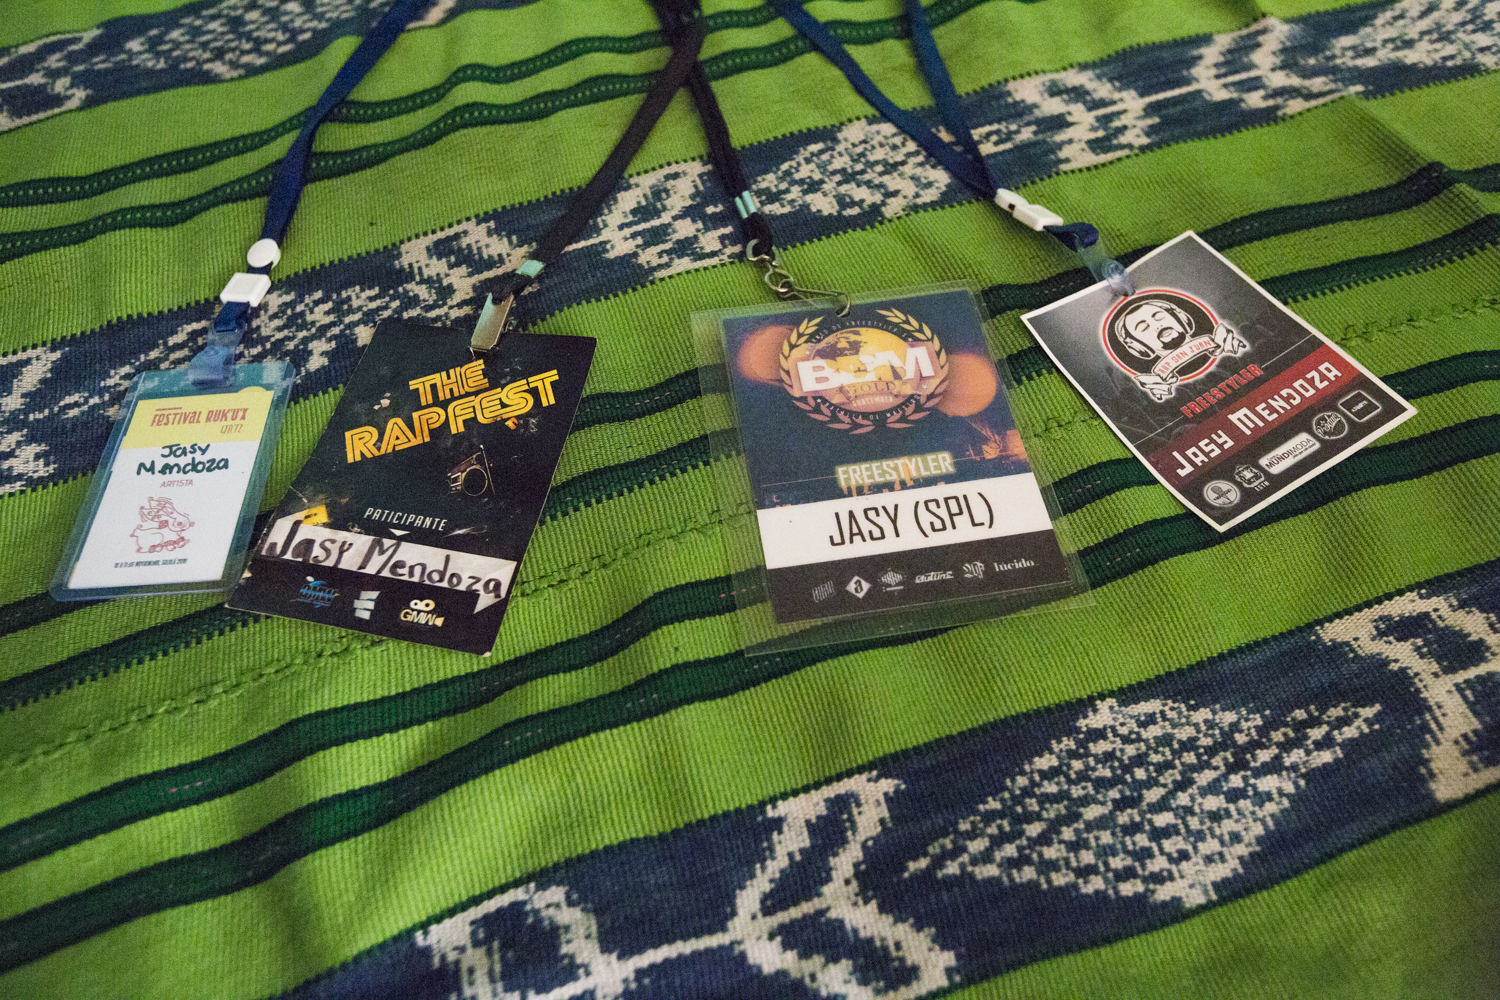 Detail shot of badges on Jasy Mendoza's bed, from some of the hip-hop events he has attended.